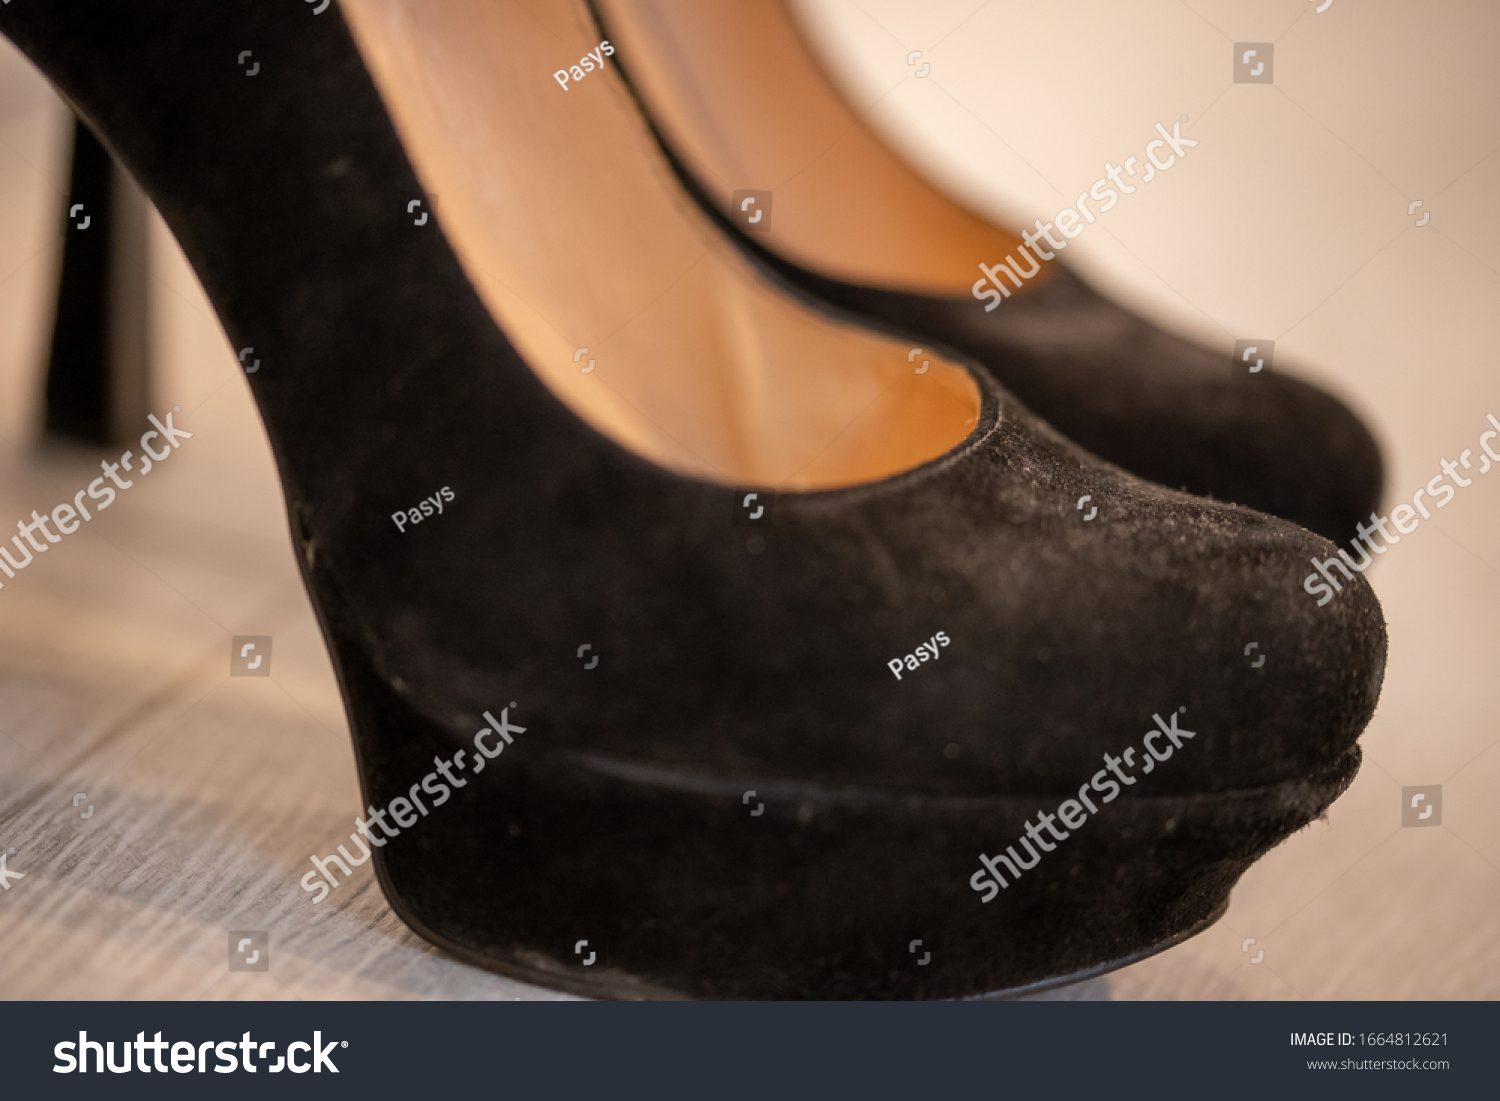 stock-photo-a-close-up-of-a-women-s-shoe